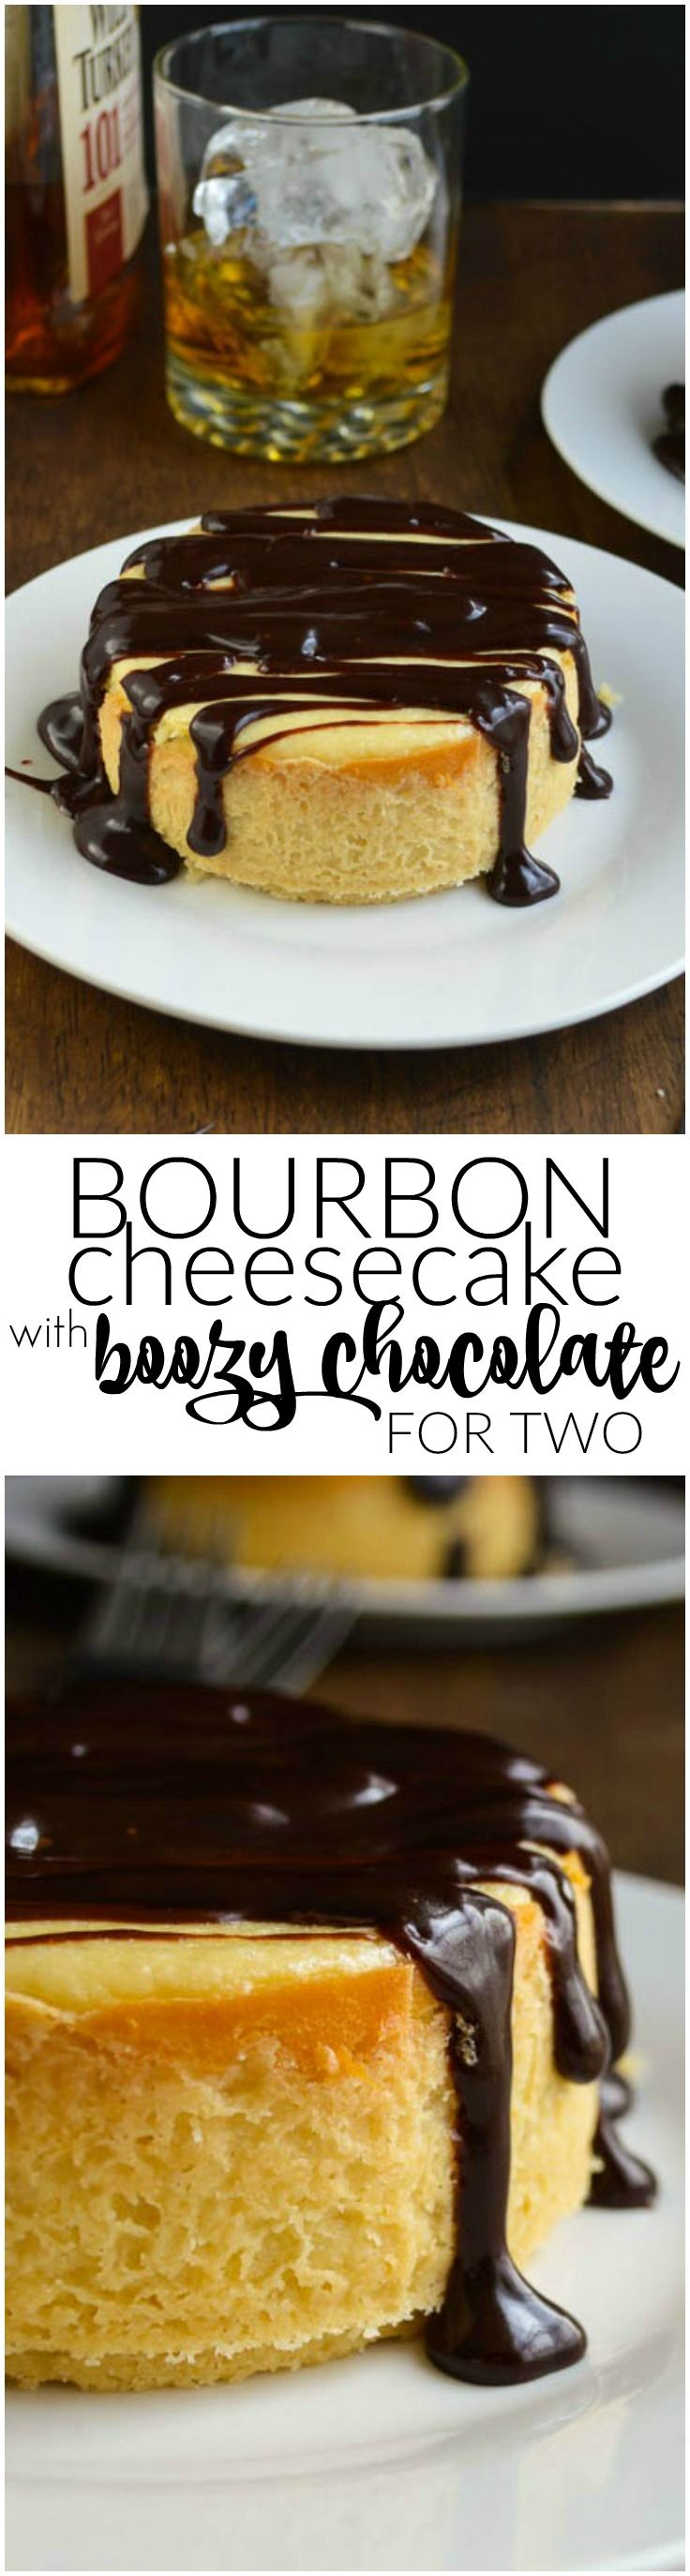 Creamy bourbon cheesecake with a shortbread crust topped with smooth chocolate sauce heated with more bourbon. Rich and delicious -- and a perfect dessert for two!